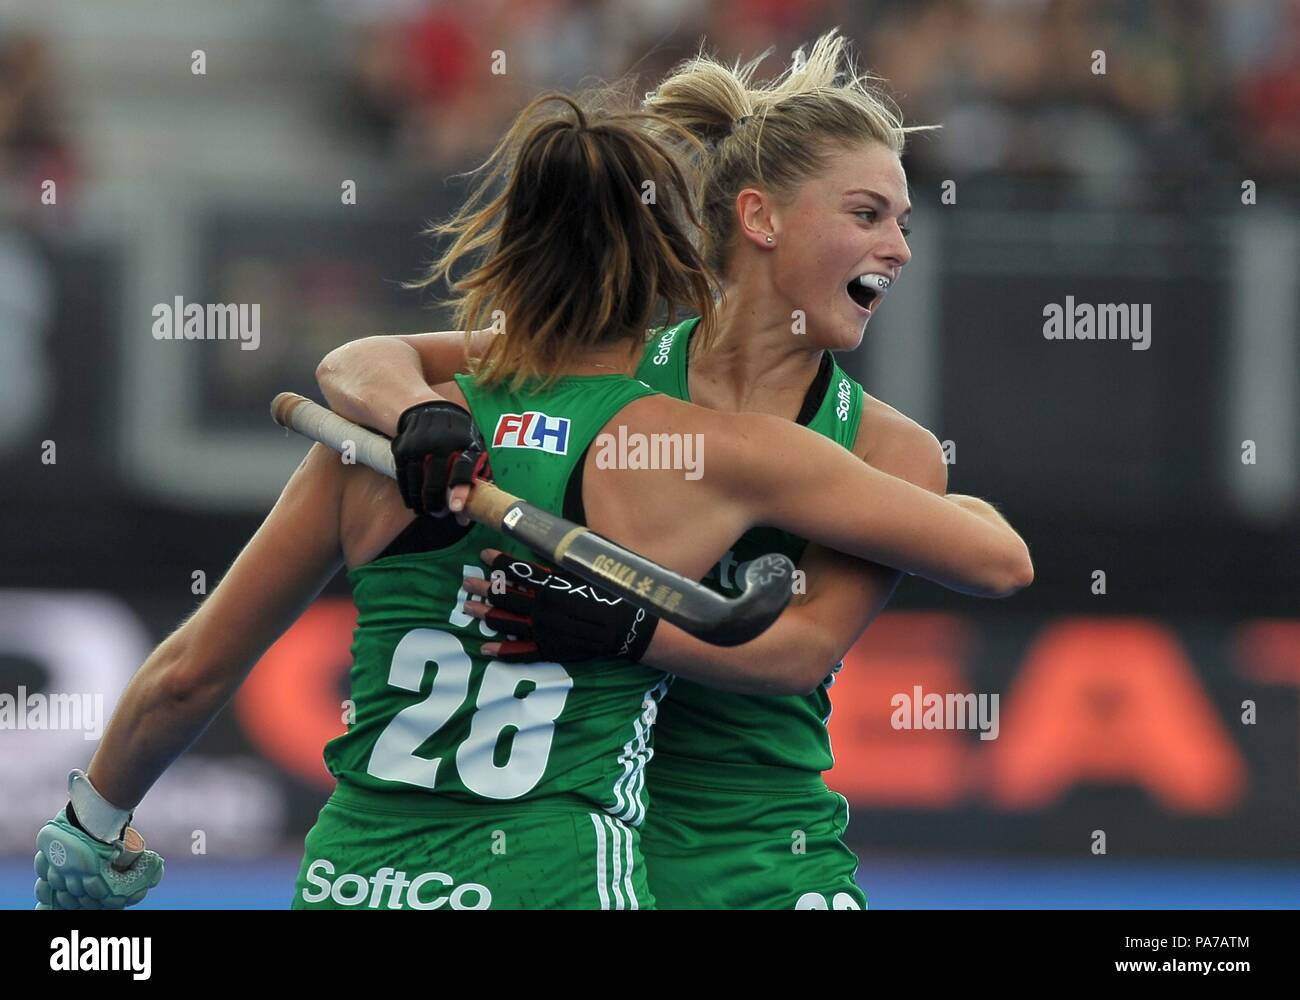 London, UK. 21st July 2018. Deirdre Duke (IRL, 28) celebrates scoring the first Irish goal with Chloe Watkins (IRL). USA V Ireland. Match 3. Pool B. Womens Hockey World Cup 2018. Lee Valley hockey centre. Queen Elizabeth Olympiv Park. Stratford. London. UK. 21/07/2018. Credit: Sport In Pictures/Alamy Live News Stock Photo